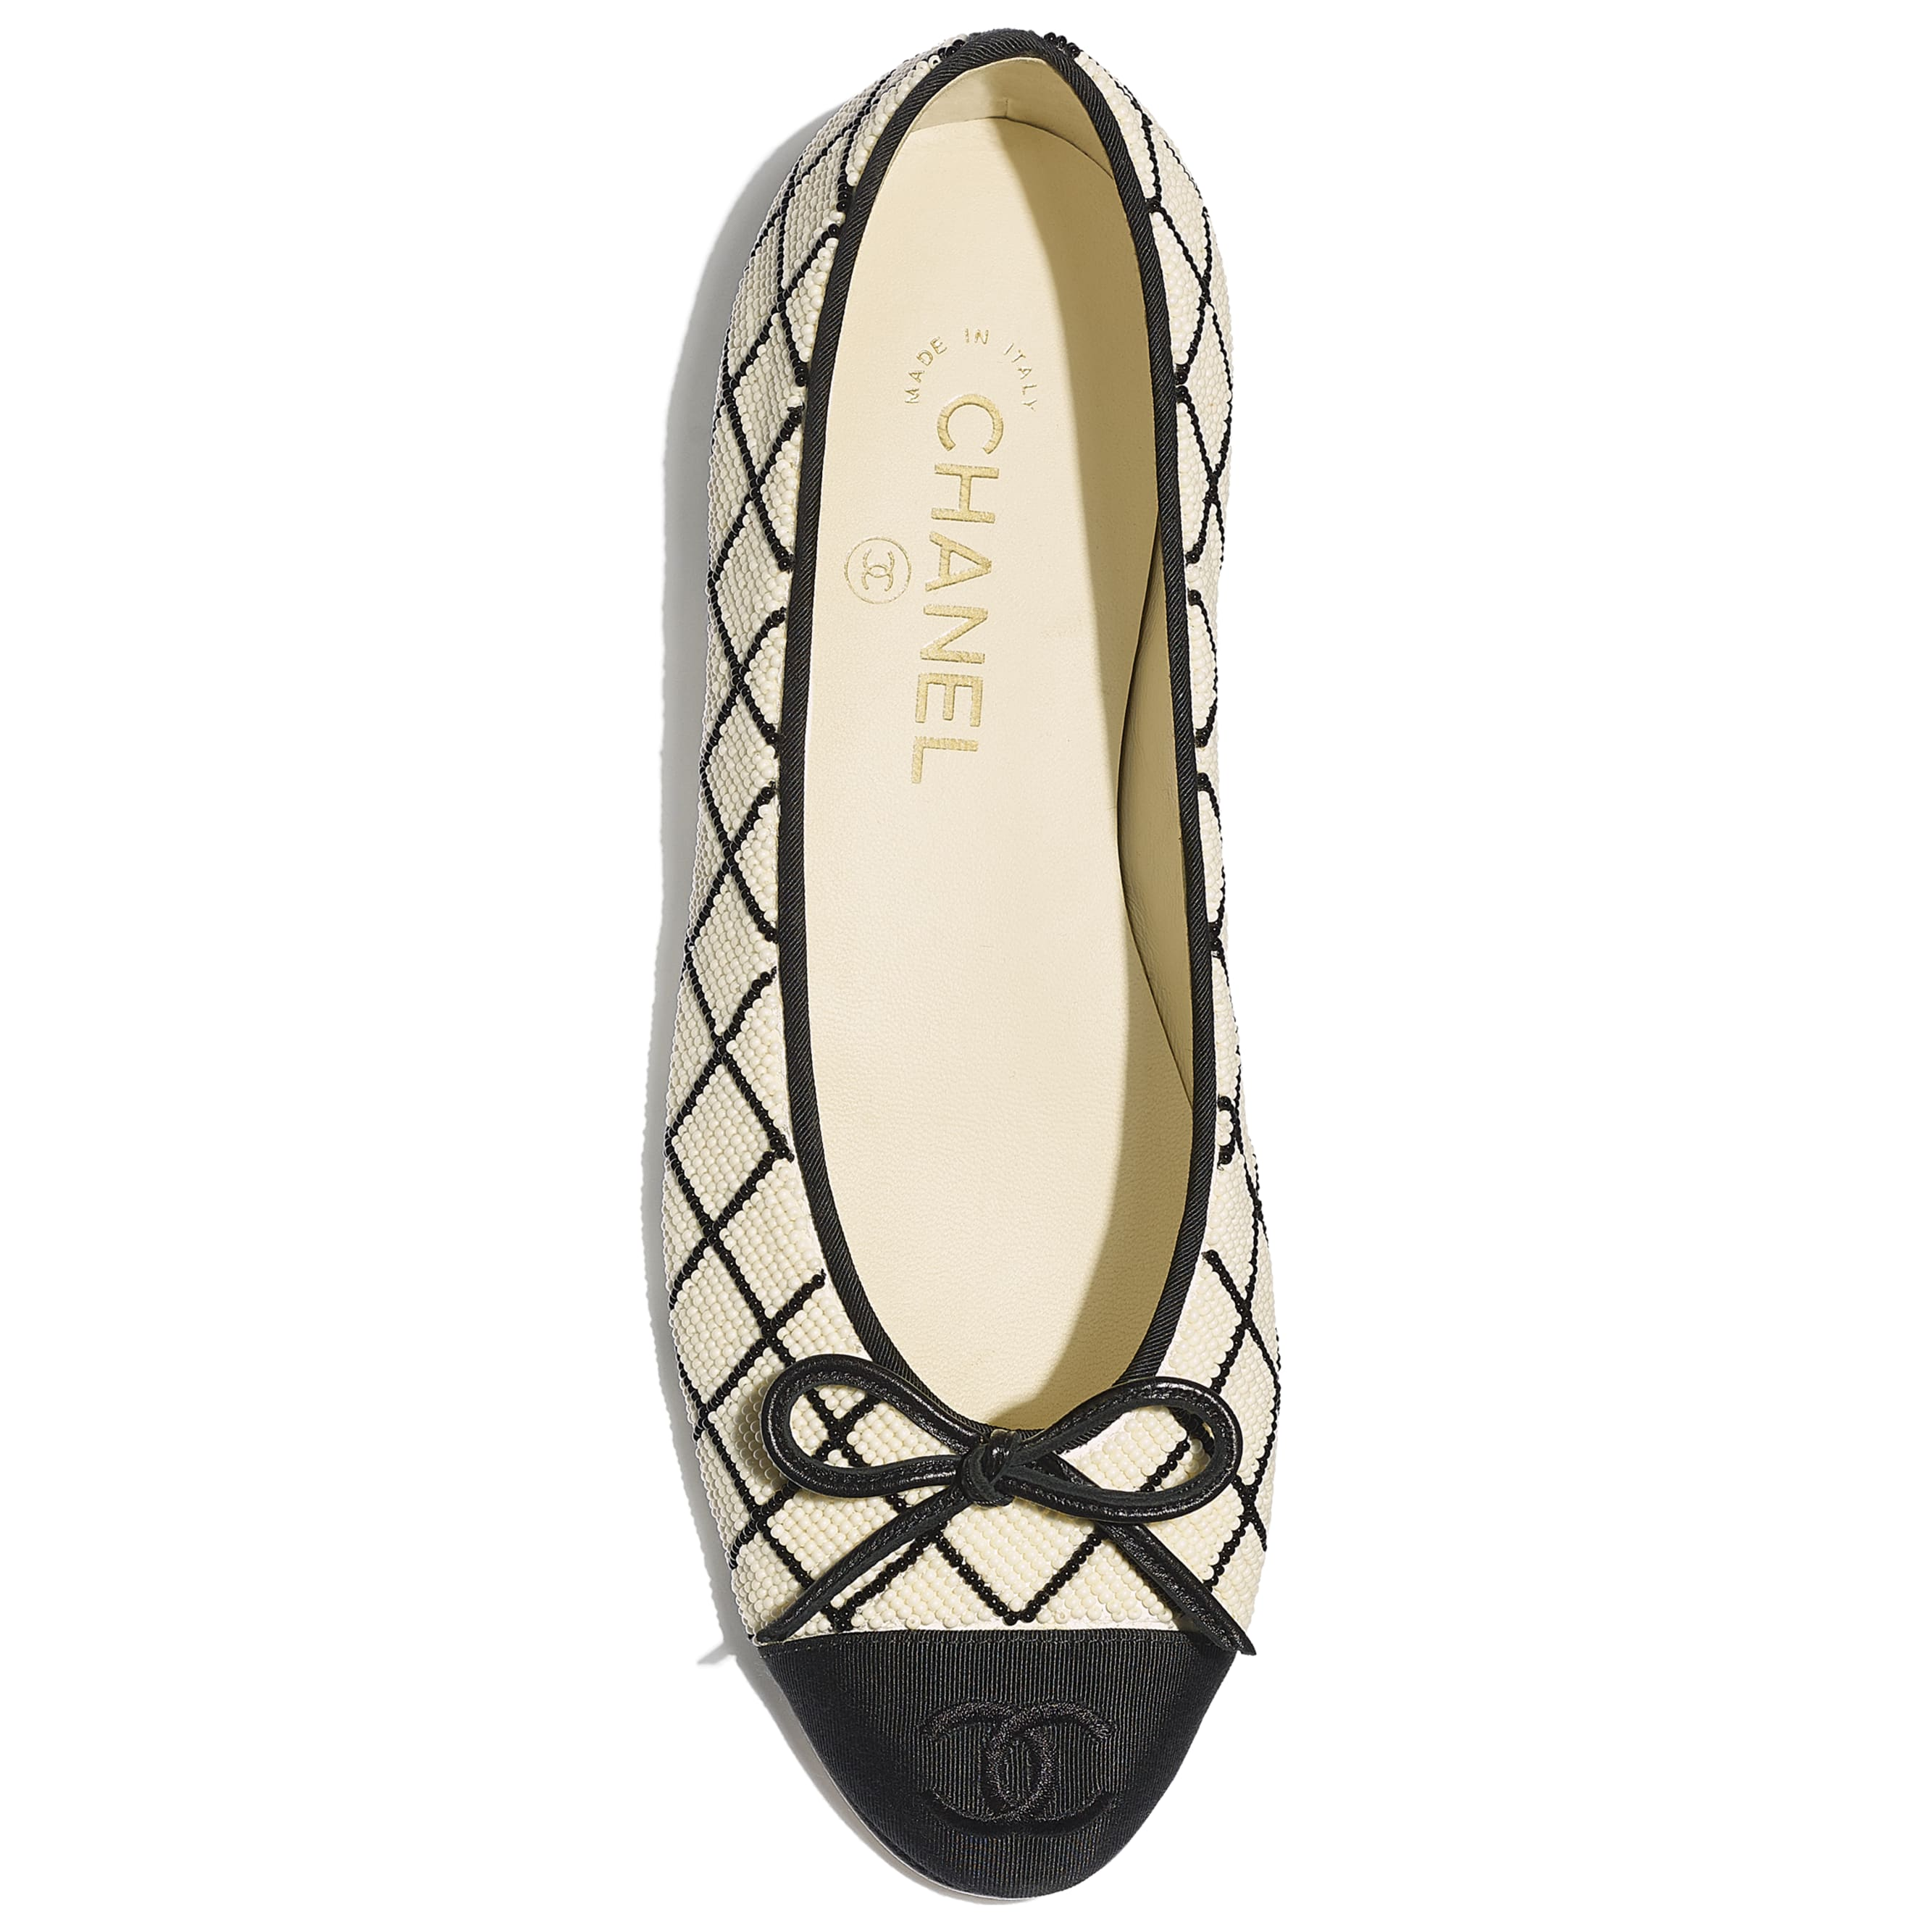 Flats - Black & Ivory - Pearls & Grosgrain - Extra view - see standard sized version